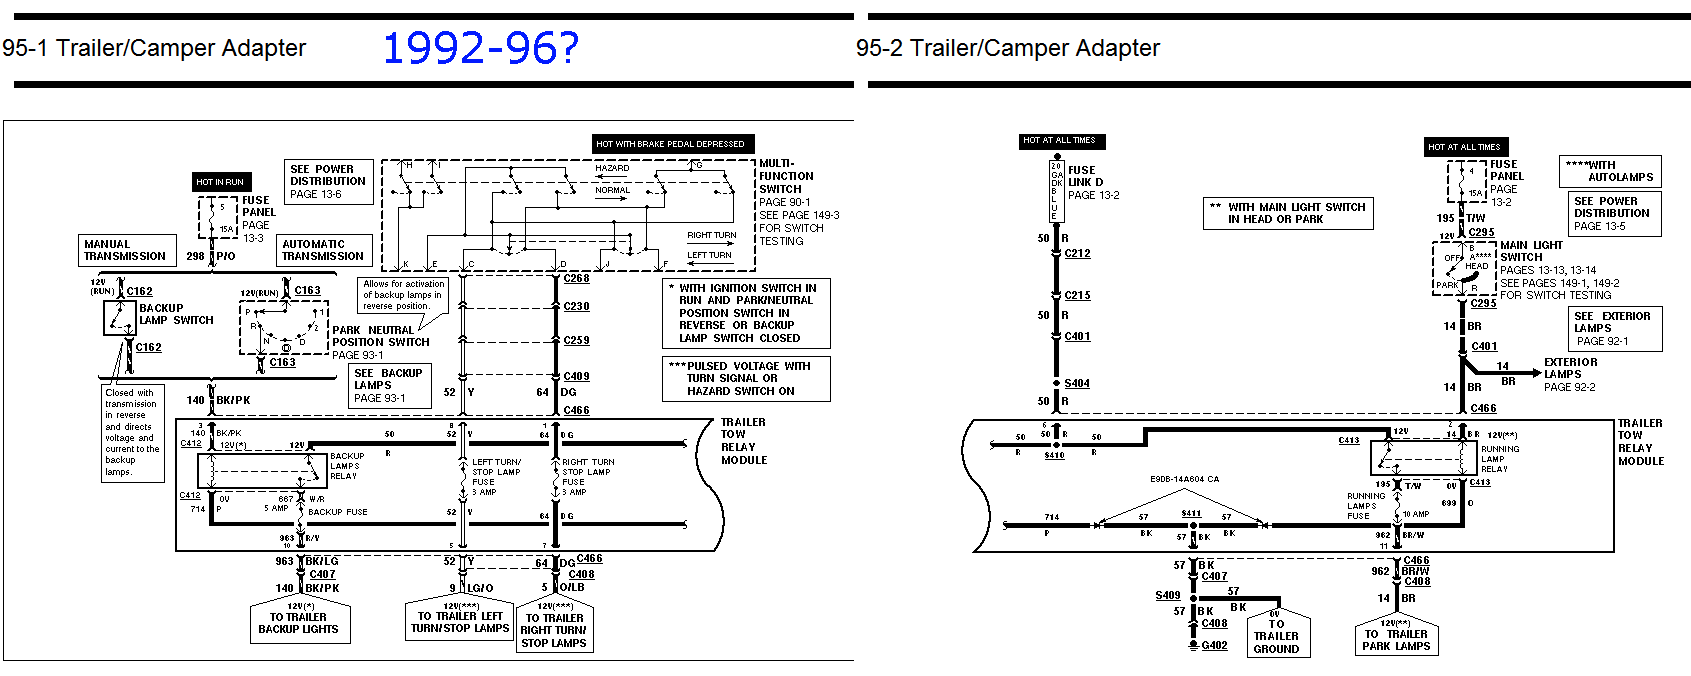 Tow_Package_Wiring_05b trailer tow package and trailer wiring questions ford truck wiring diagram for a ford aerostar at reclaimingppi.co